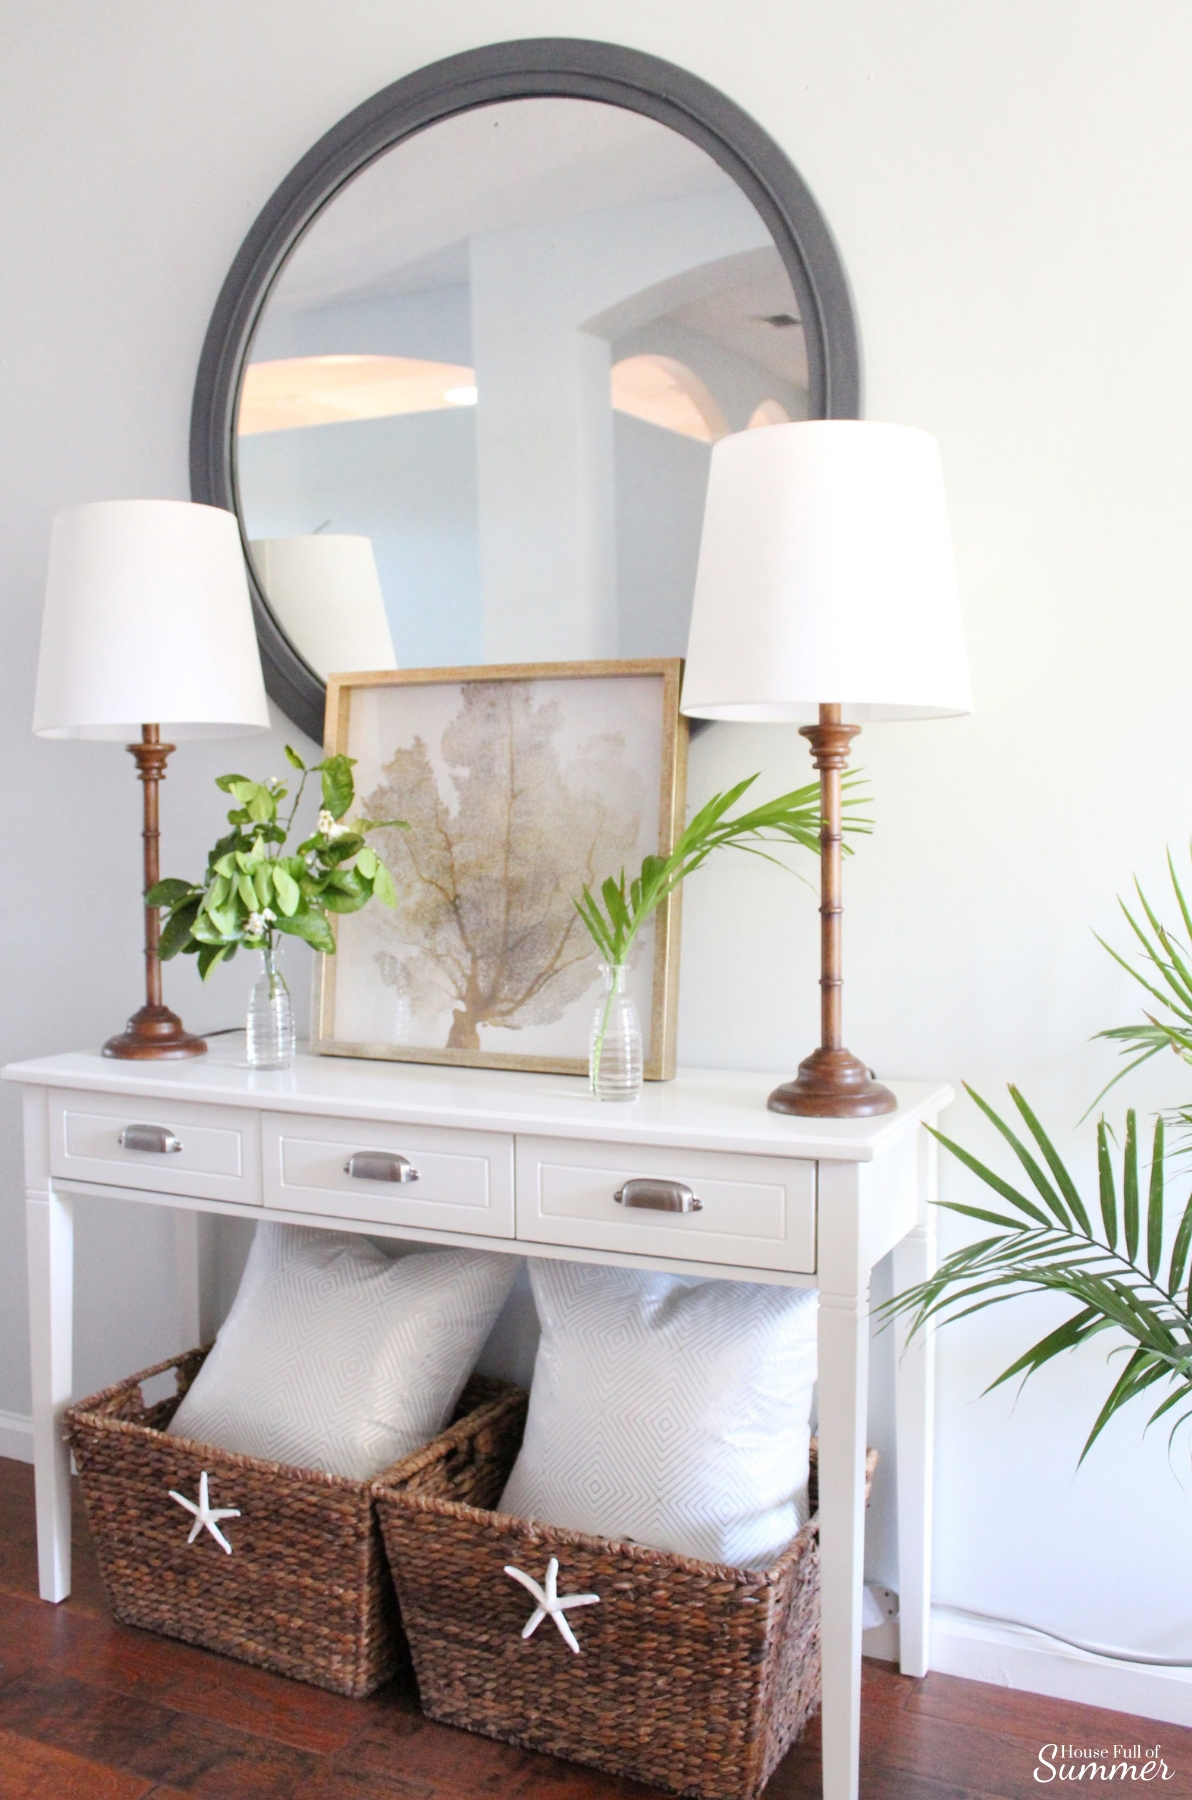 5 Items You'd Never Guess I Found on Craigslist - cheap decorating ideas, budget decor, DIY home ideas, cane furniture, coastal home decor, foyer decor, bamboo lamps, #housefullofsummer